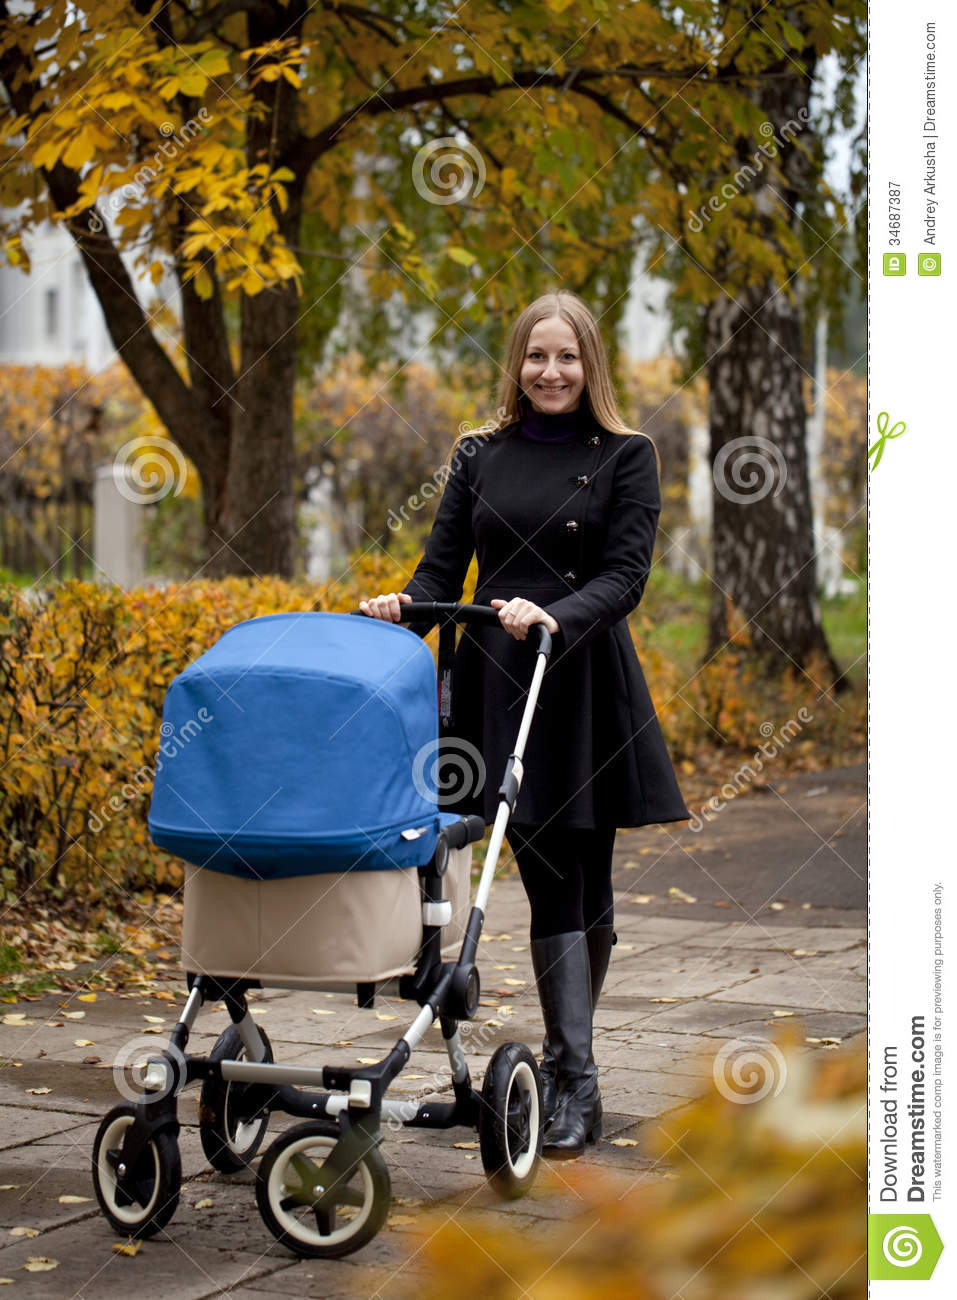 Carriage Pram Stroller Mother With Baby Stroller For A Newborn Stock Image